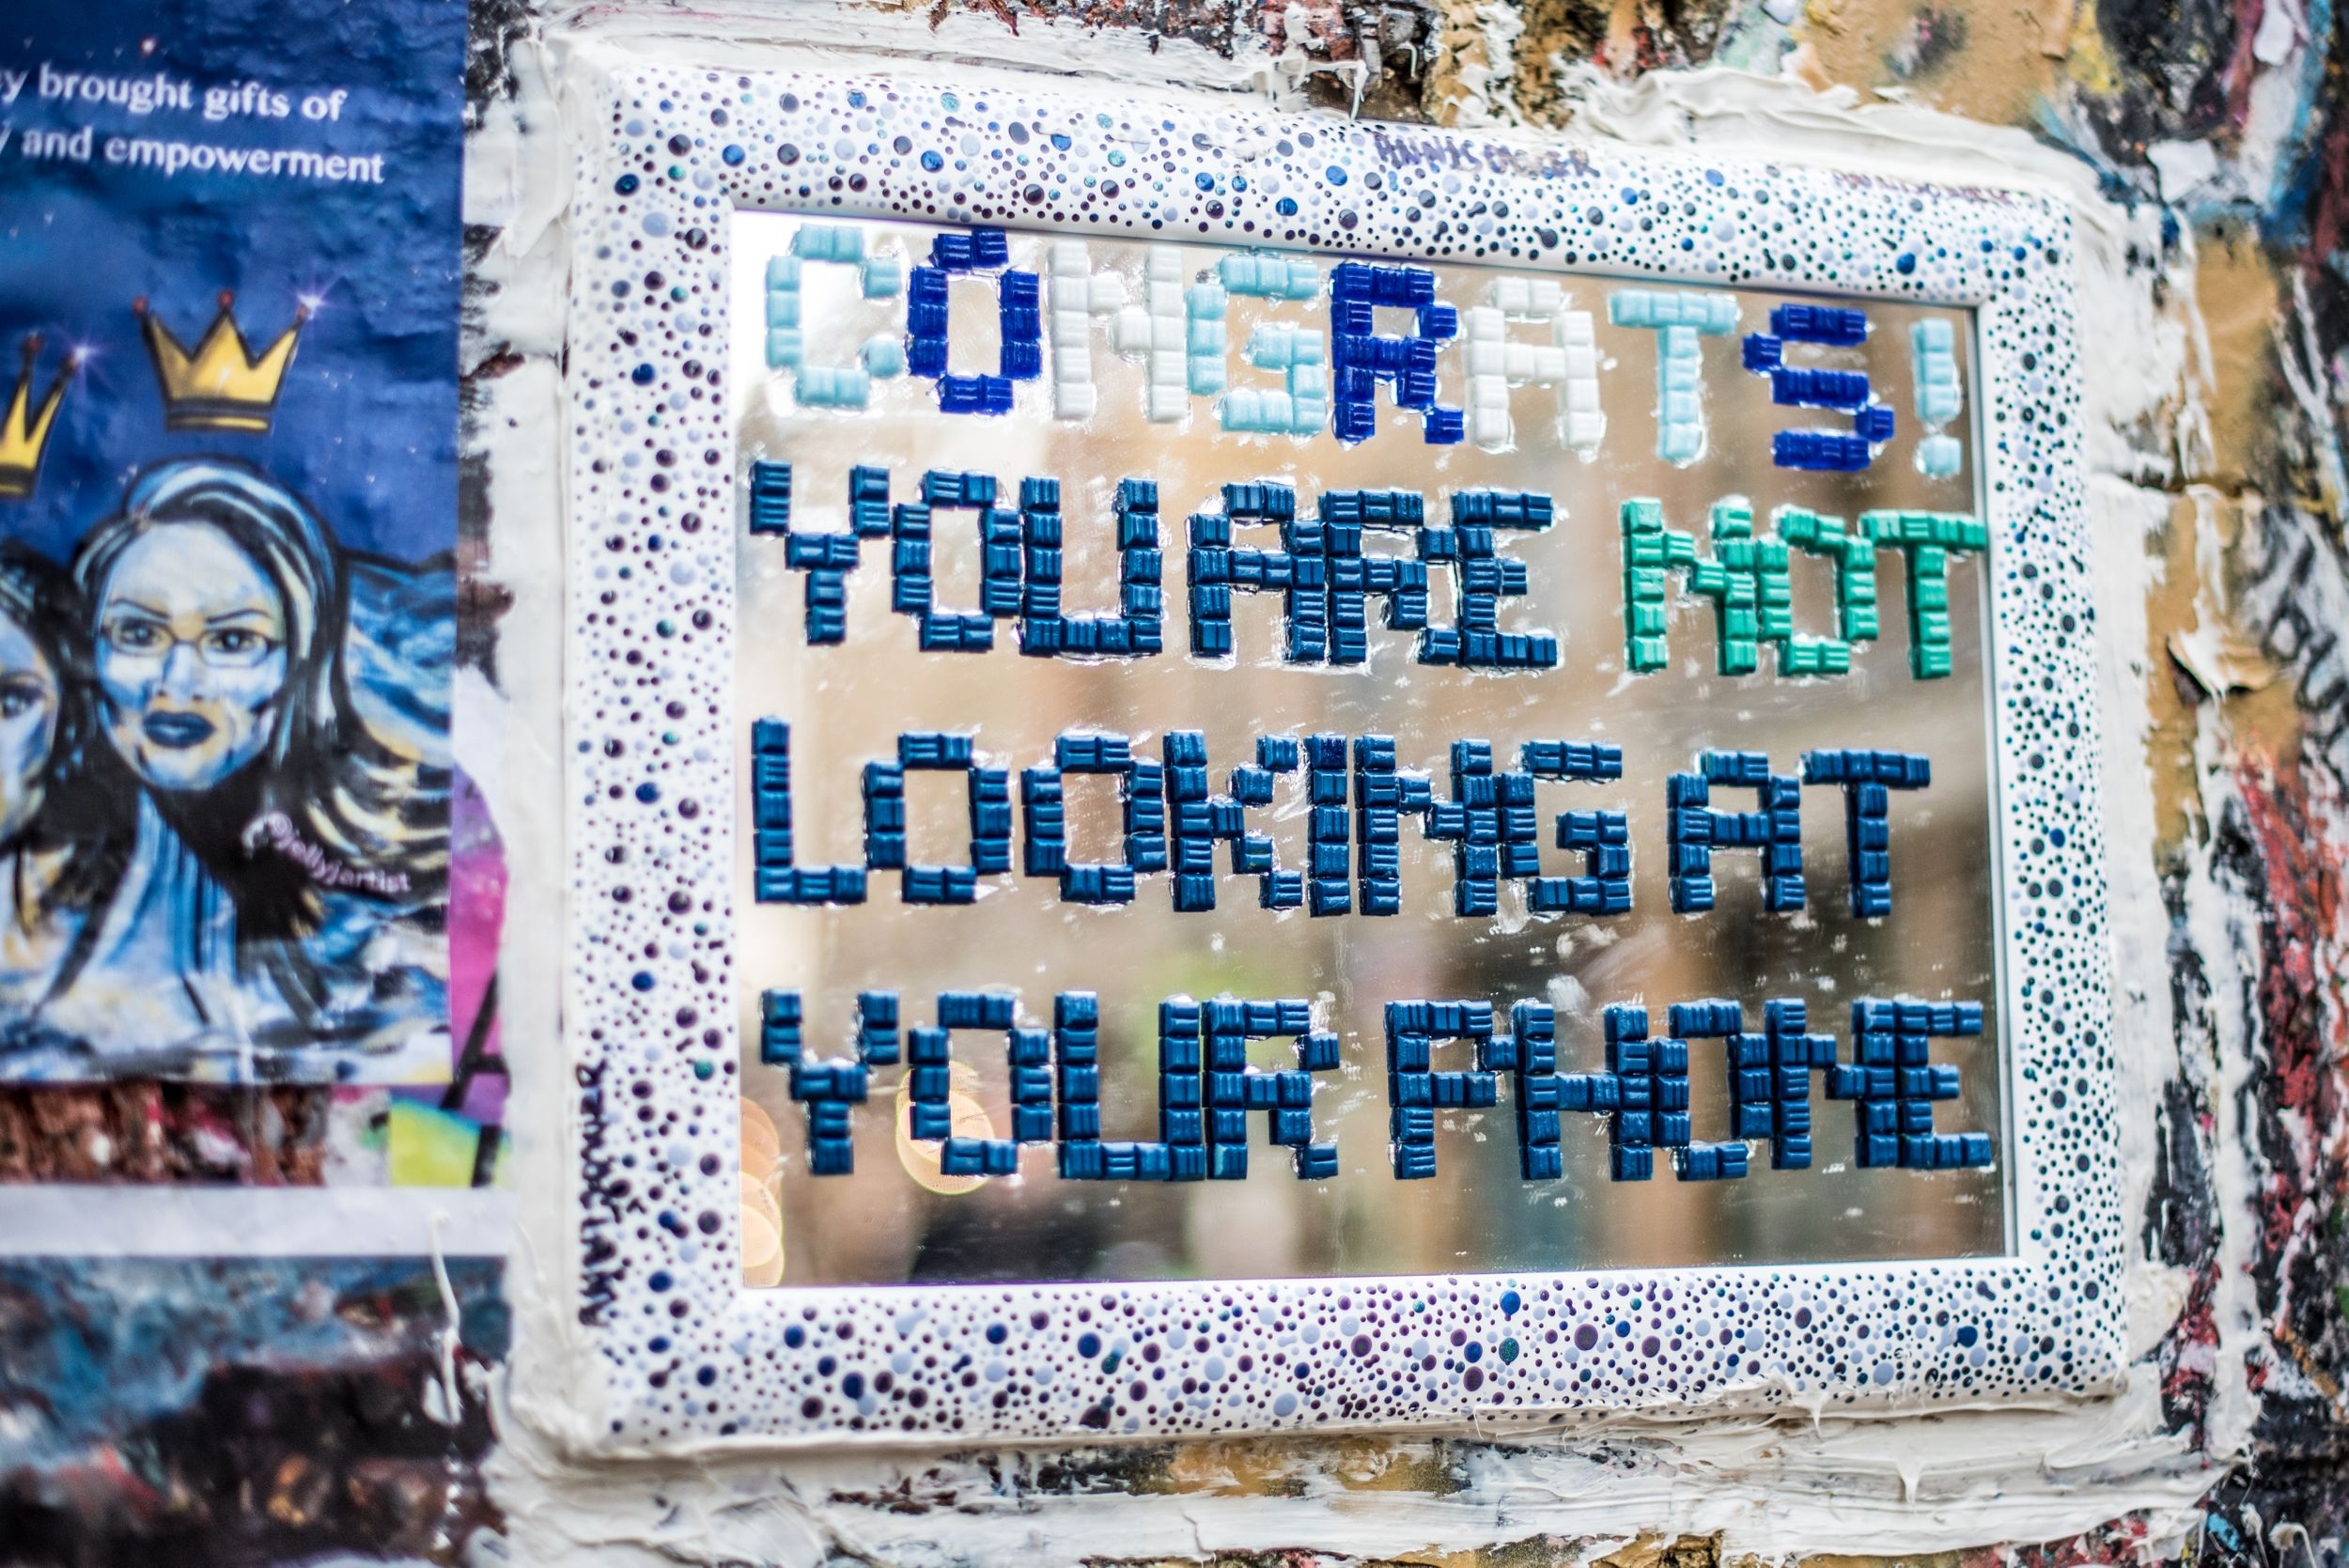 Congrats, you are not looking at your phone mirrored message on wall in London's artsy Shoreditch area.